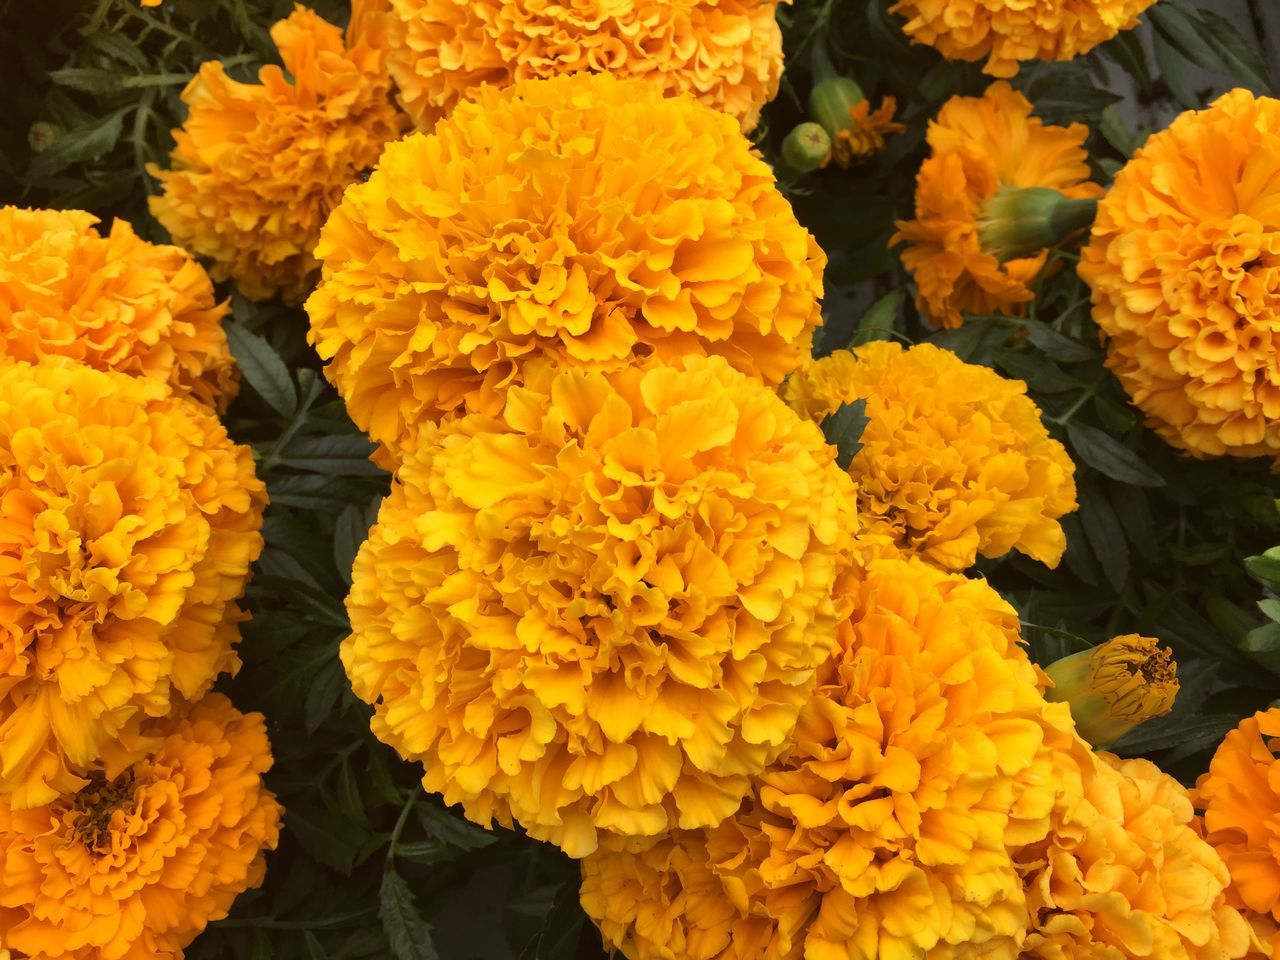 Flowers in the city's park under summer Abundance Beauty In Nature Blooming Blossom Botany Close-up Flower Flower Head Fragility Freshness Full Frame Growth In Bloom Nature Orange Color Outdoors Petal Plant Scenics Softness Springtime Stock Image Tranquility Vibrant Color Yellow